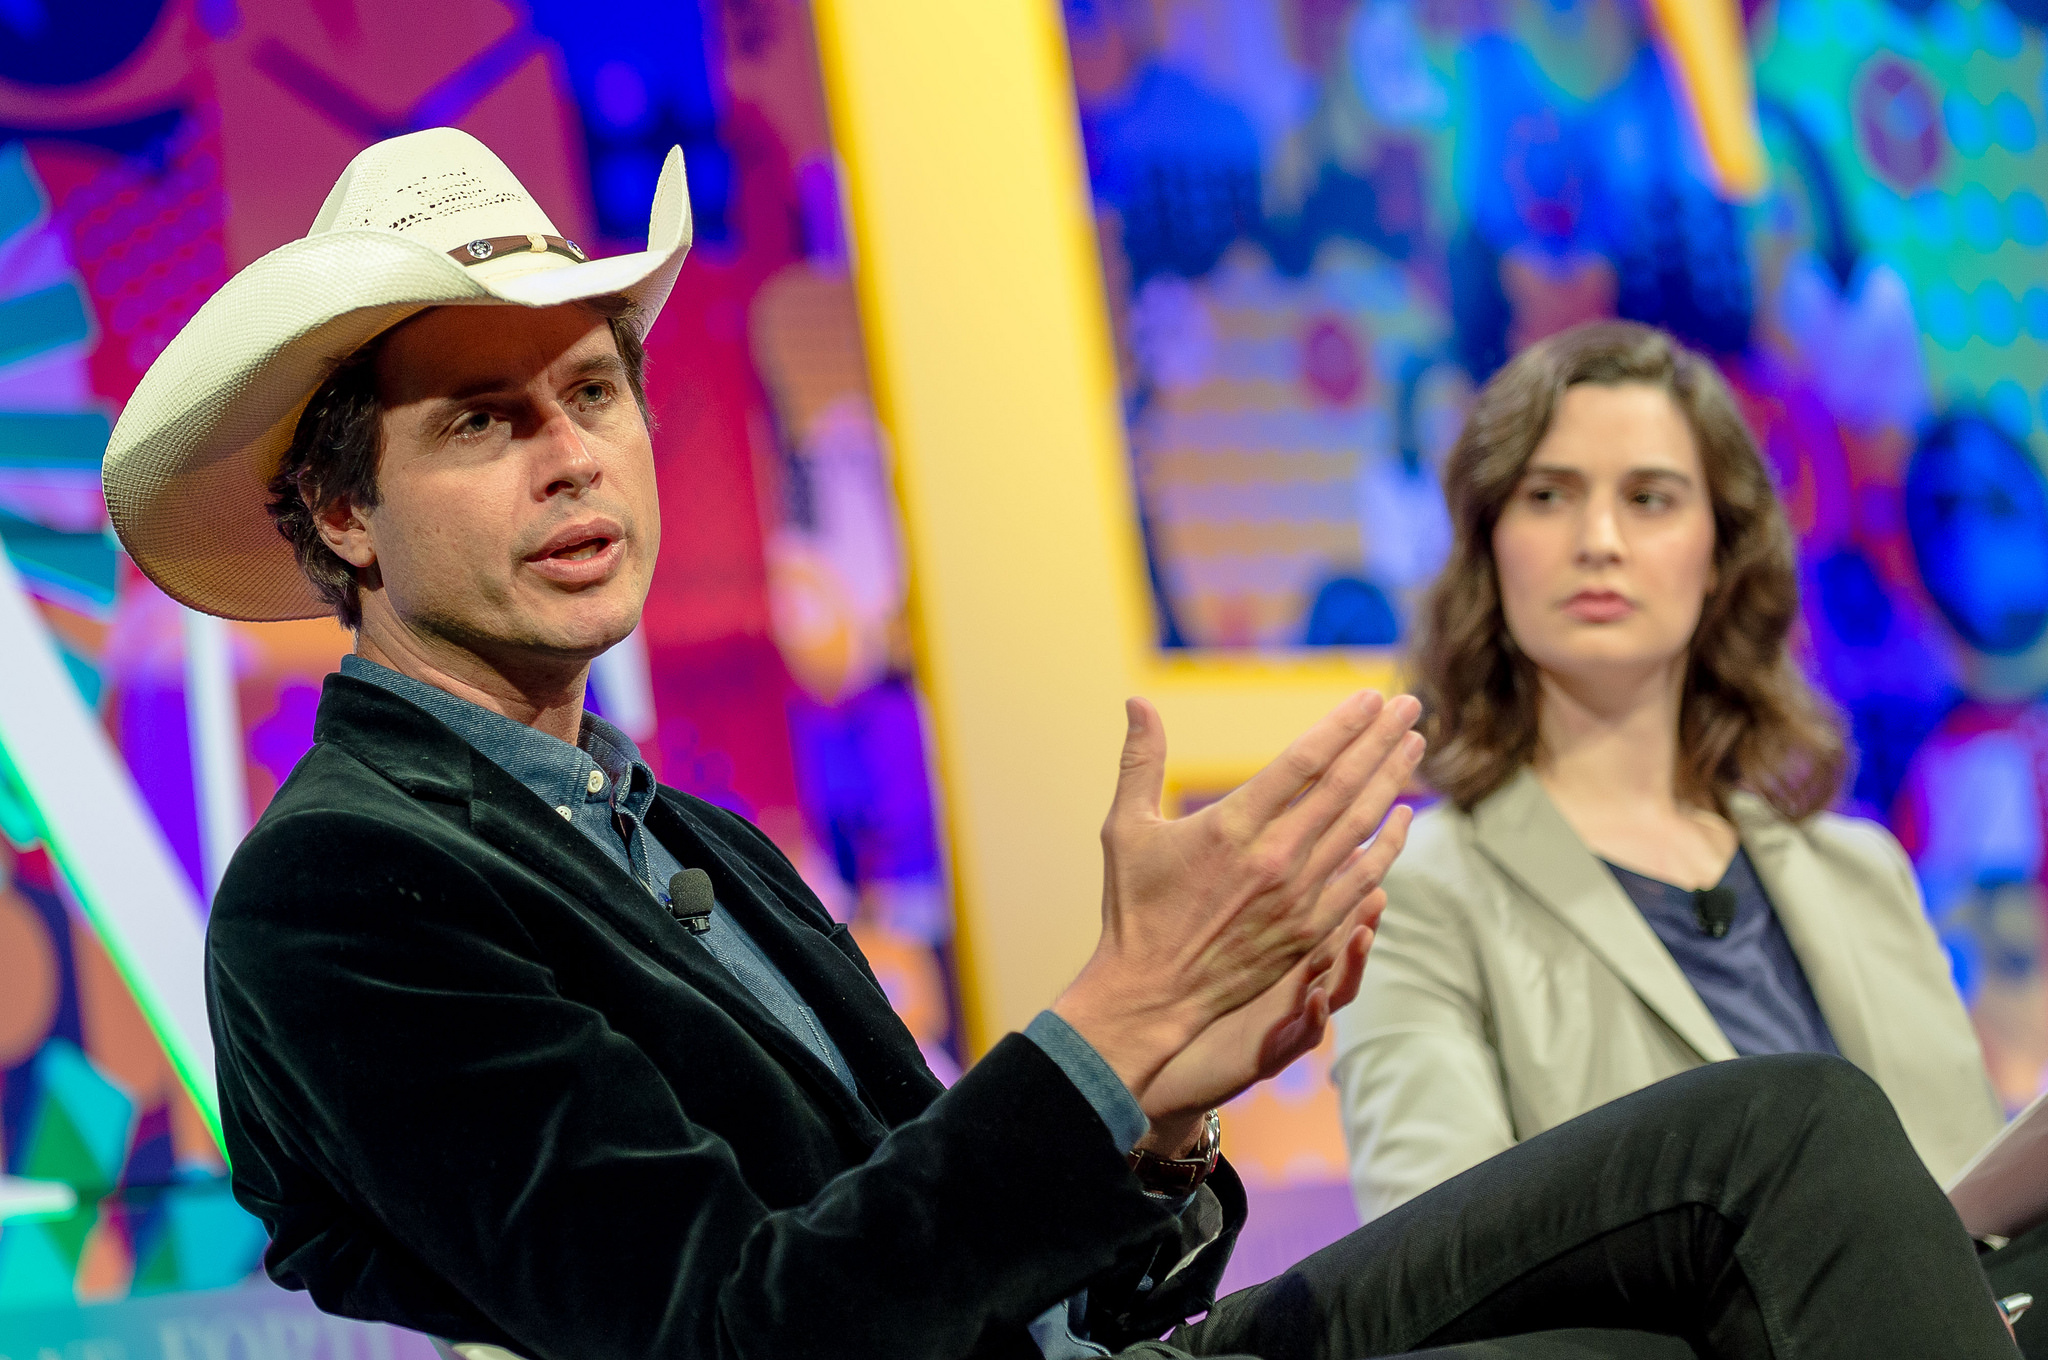 Elon Musk isn't the only one in his family driving revolutionary thinking. A talk with Kimbal Musk about his fast-growing farm-to-table restaurant business.